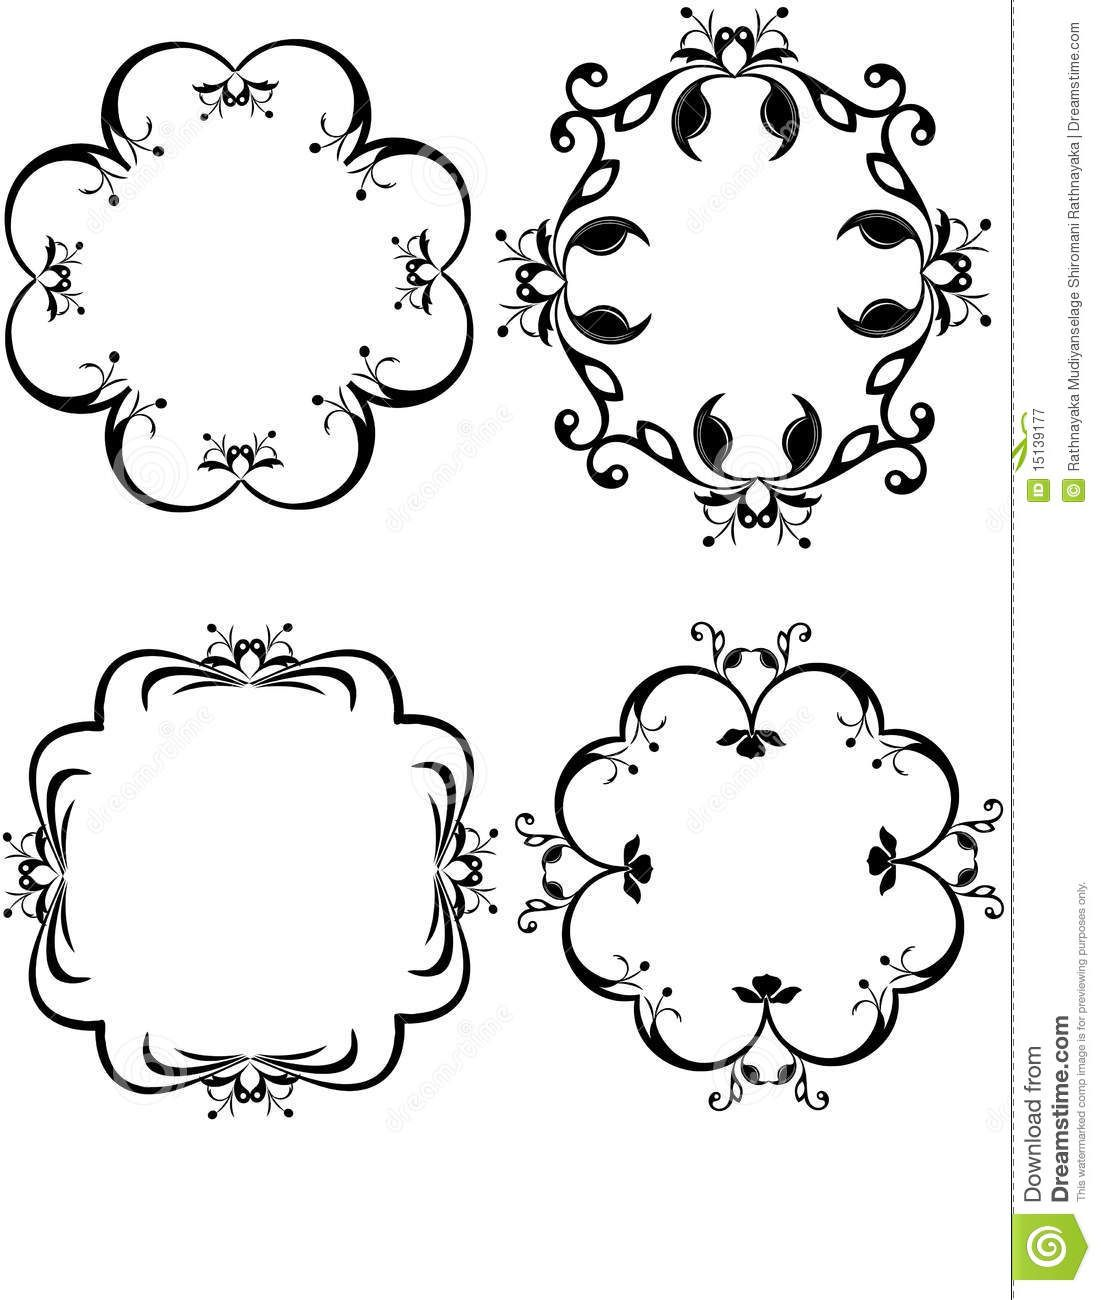 Set Of Decorative Borders - Download From Over 27 Million High Quality Stock Photos, Images, Vectors. Sign up for FREE today. Image: 15139177